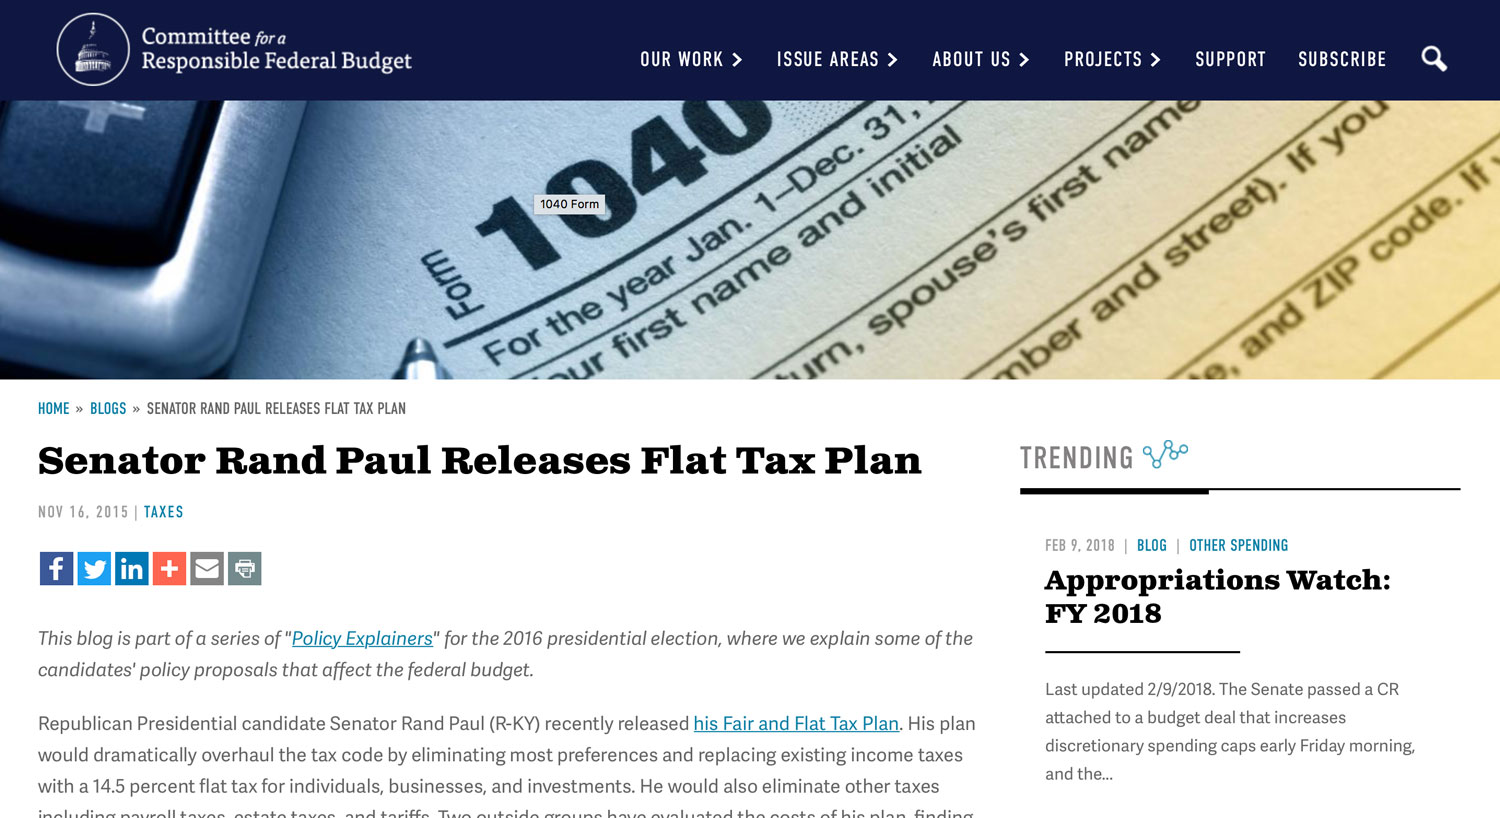 Committee for responsible budget, Senator Rand Paul releases Flat Tax plan